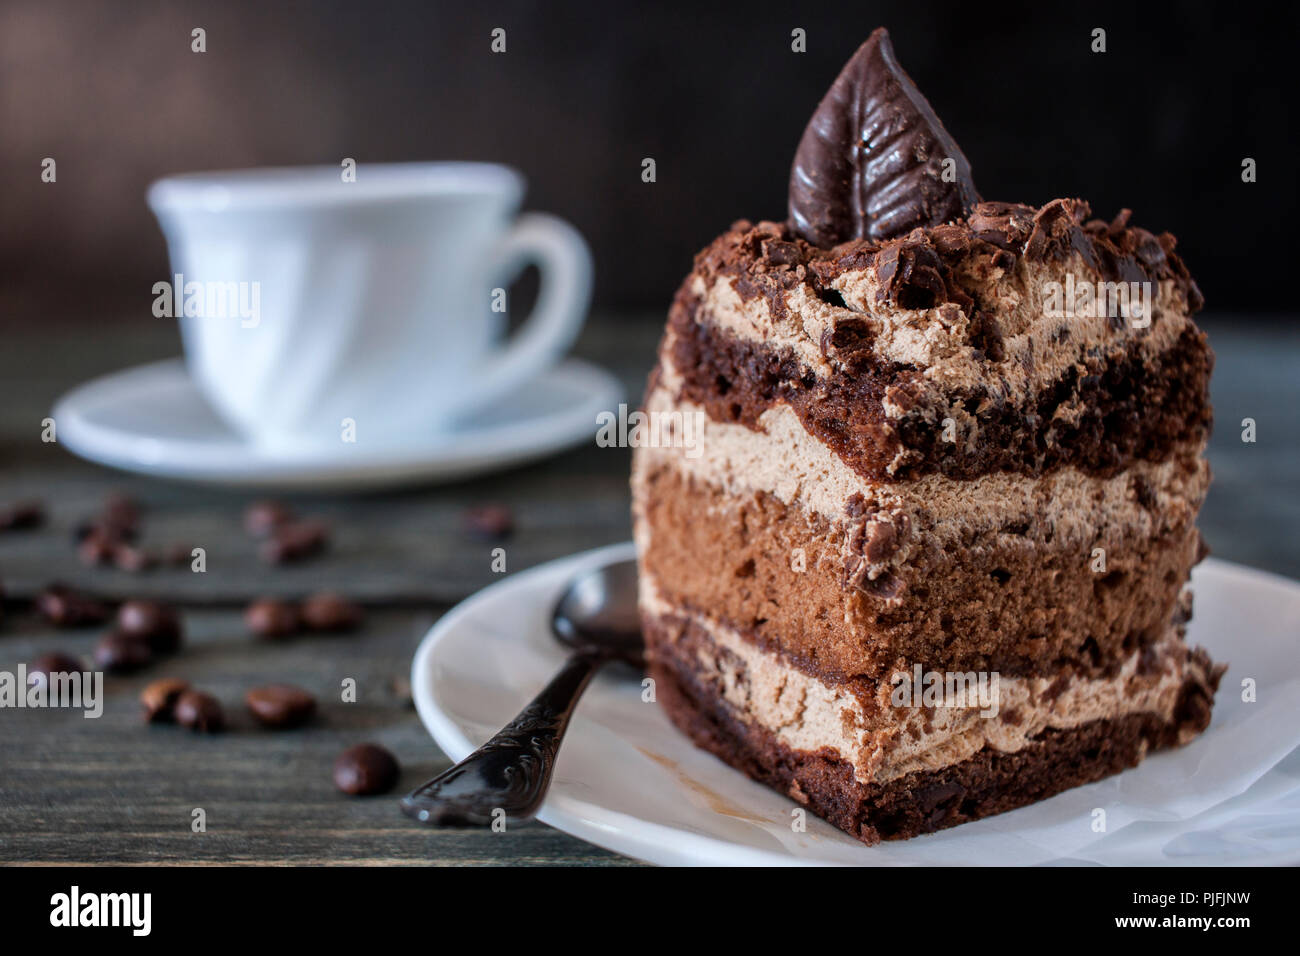 Tasty piece of chocolate cake on wooden table background Stock Photo